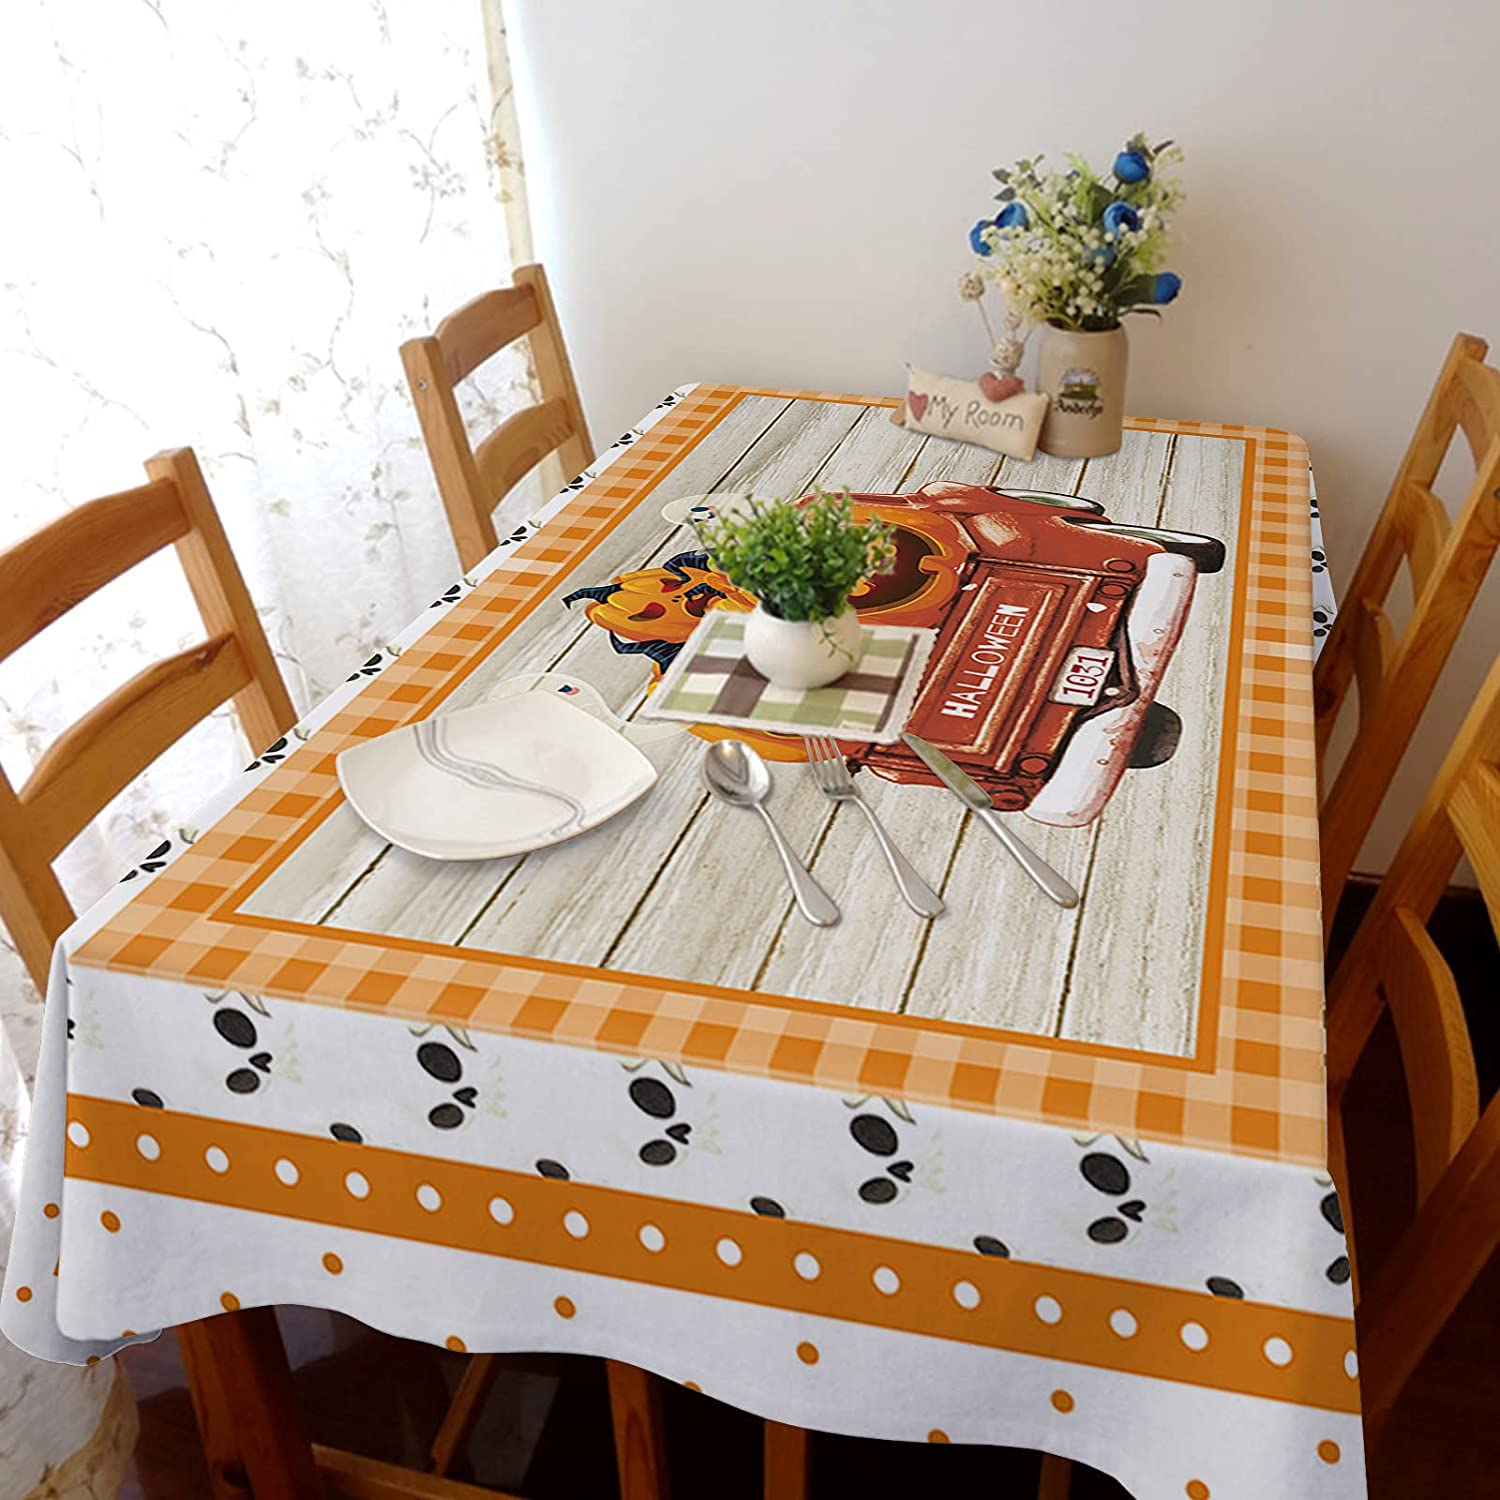 Arts Language Tablecloth for Rectangle Table Oval Max New item 61% OFF Pump Halloween